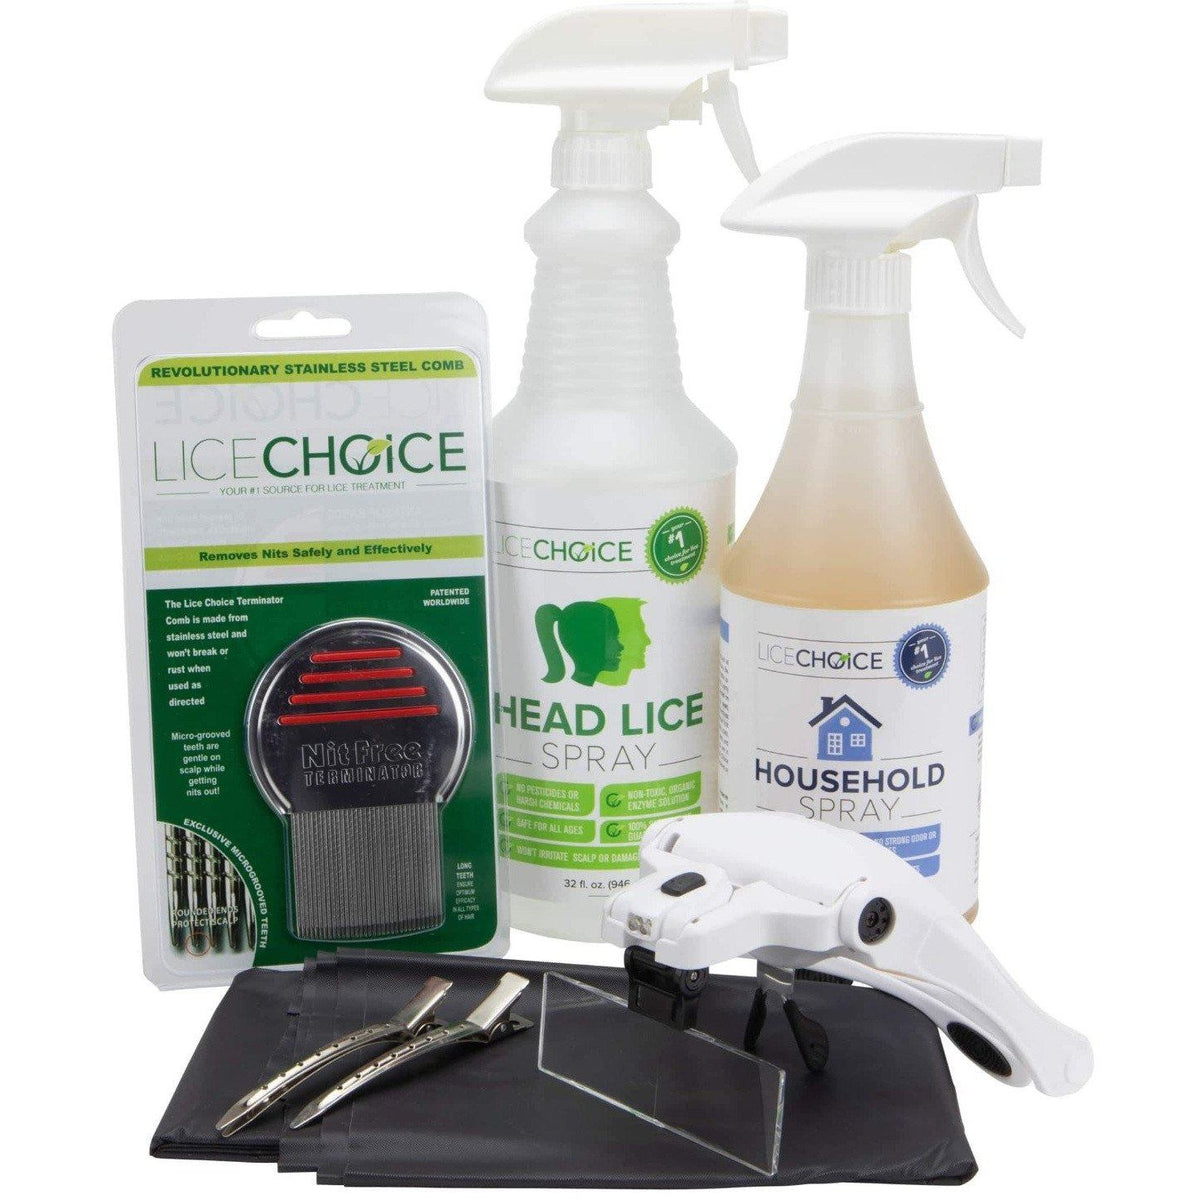 Lice Choice Complete Head and Household Lice Treatment Kit with the Terminator Nit Comb, Magnifying Goggles, Disposable Cape, and Hair Clips.